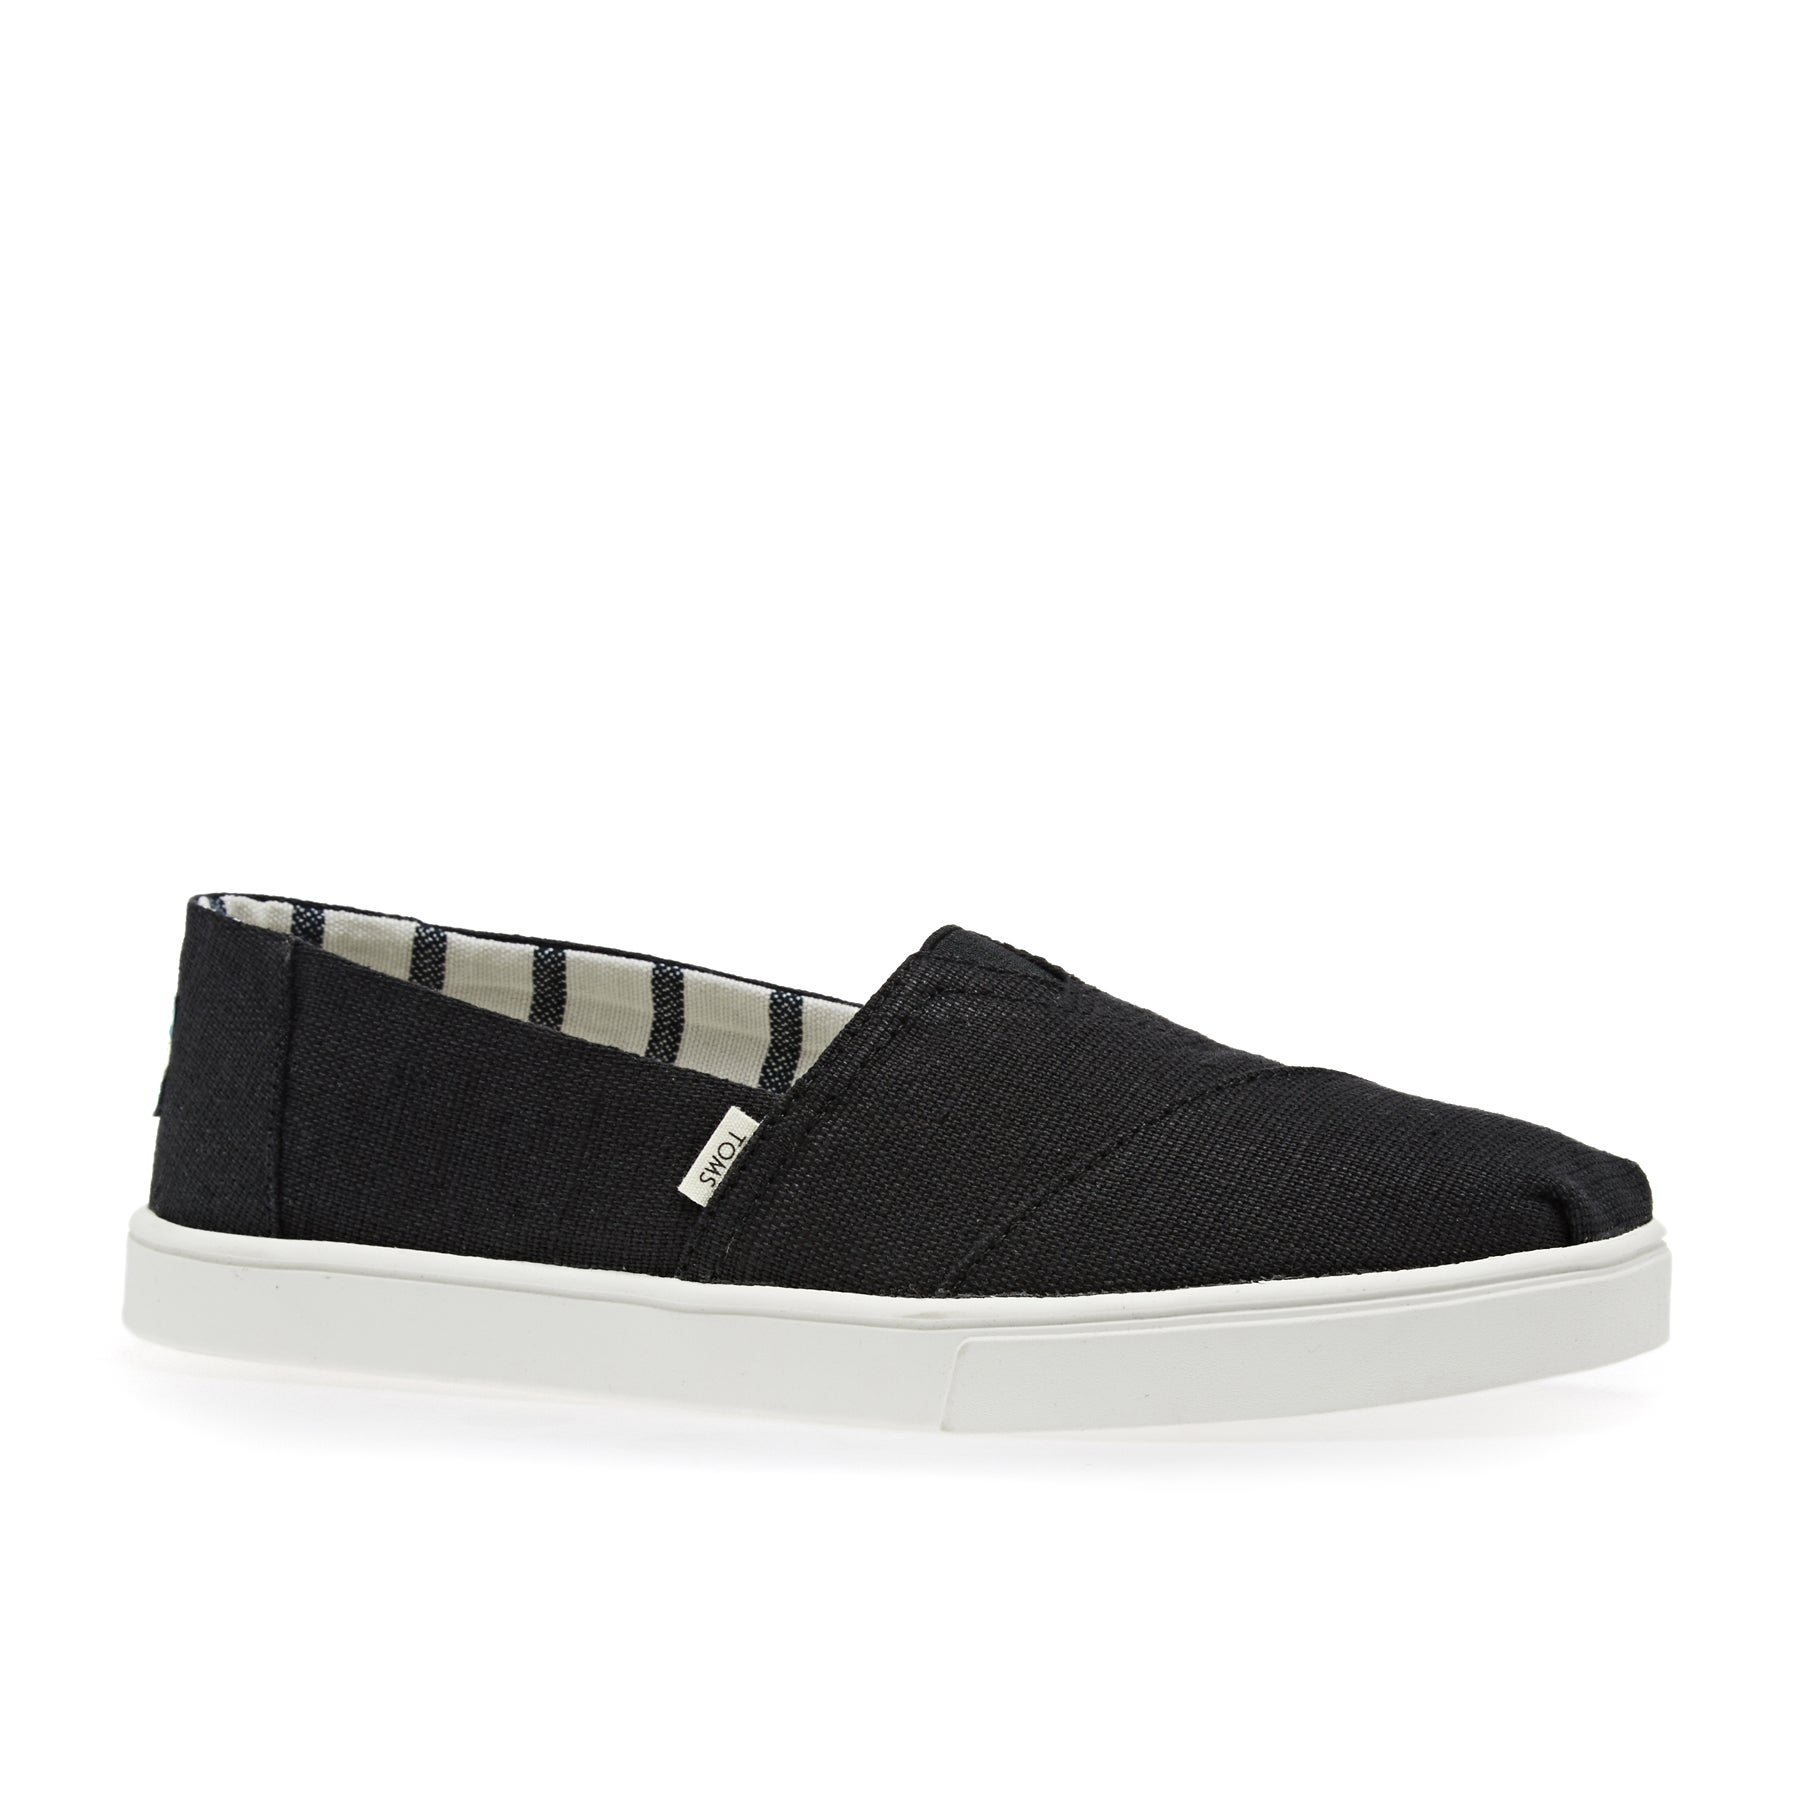 Toms Canvas Cupsole Womens Slip On Shoes - Black